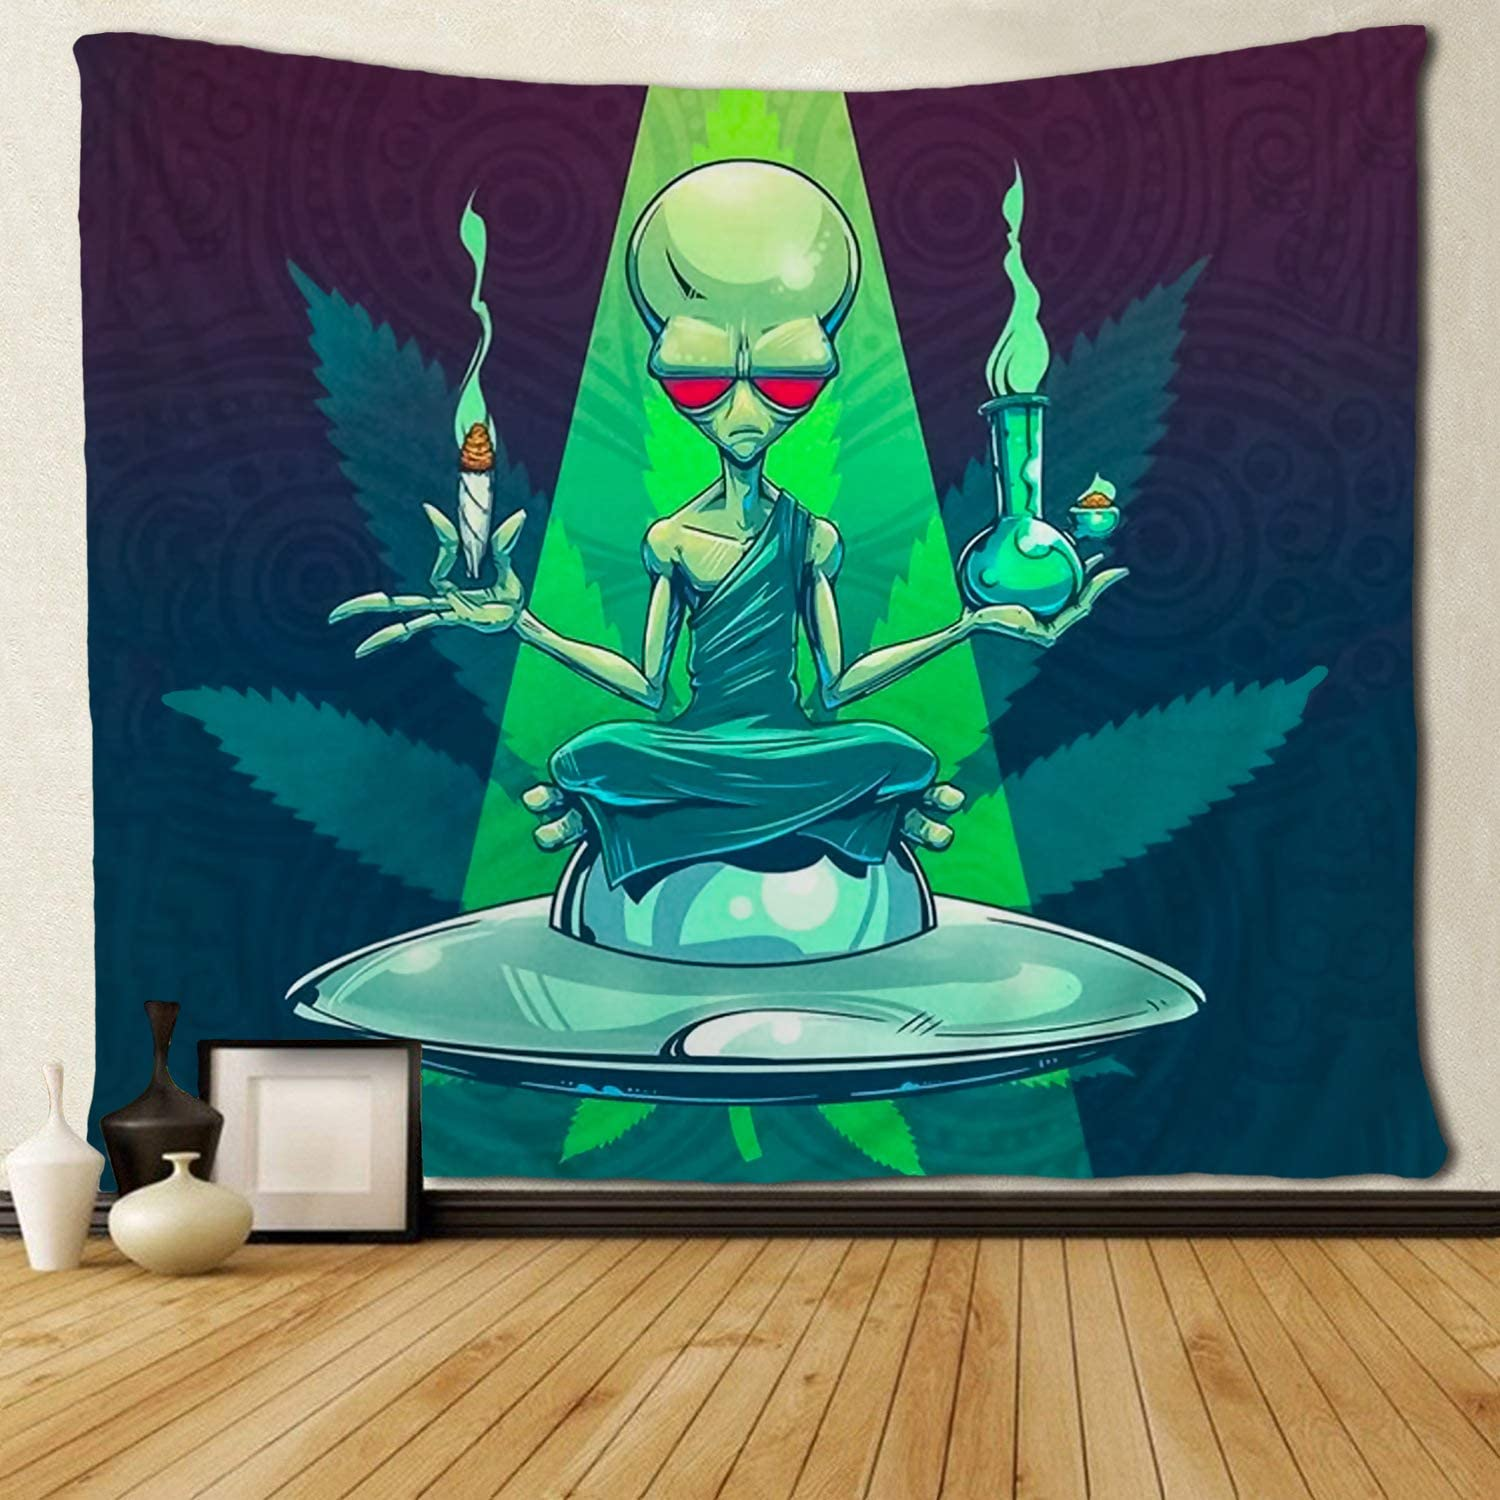 SARA Rapid rise NELL Magical Trippy Psychedelic Tapestry Alien Ci Take Cool Safety and trust